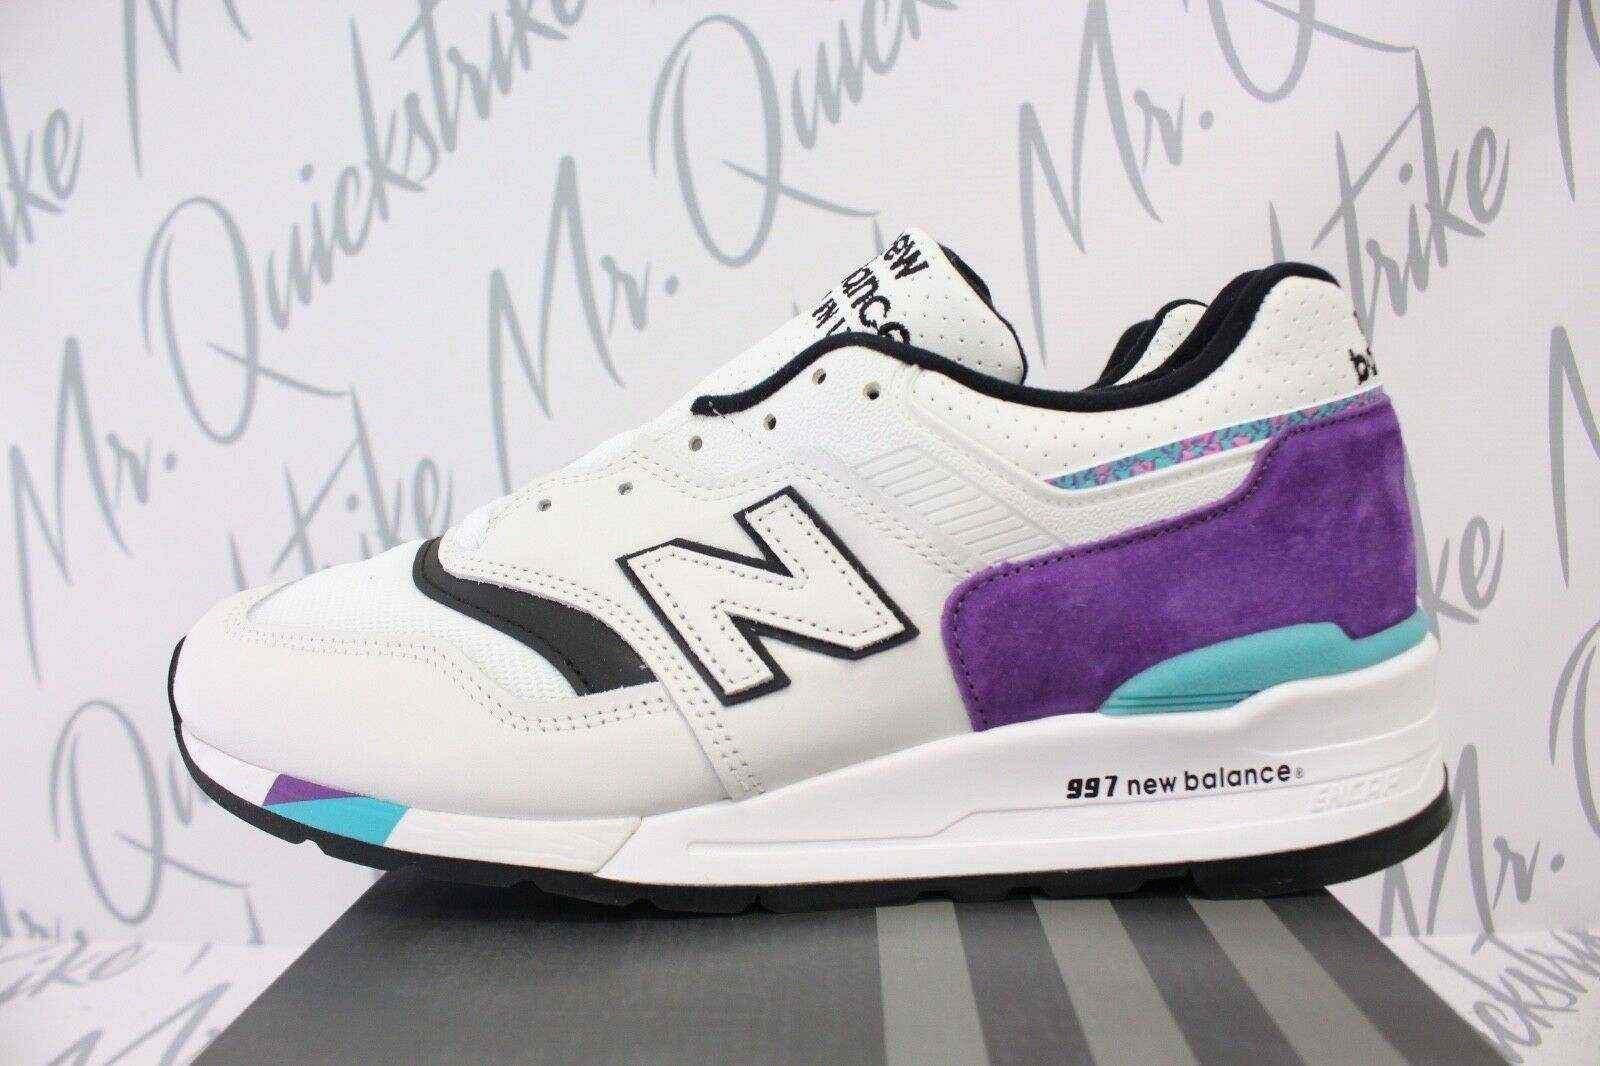 NEW BALANCE 997 MADE 11.5 IN THE USA SZ 11.5 MADE WHITE PURPLE BLACK TEAL M997WEA 70f2b3